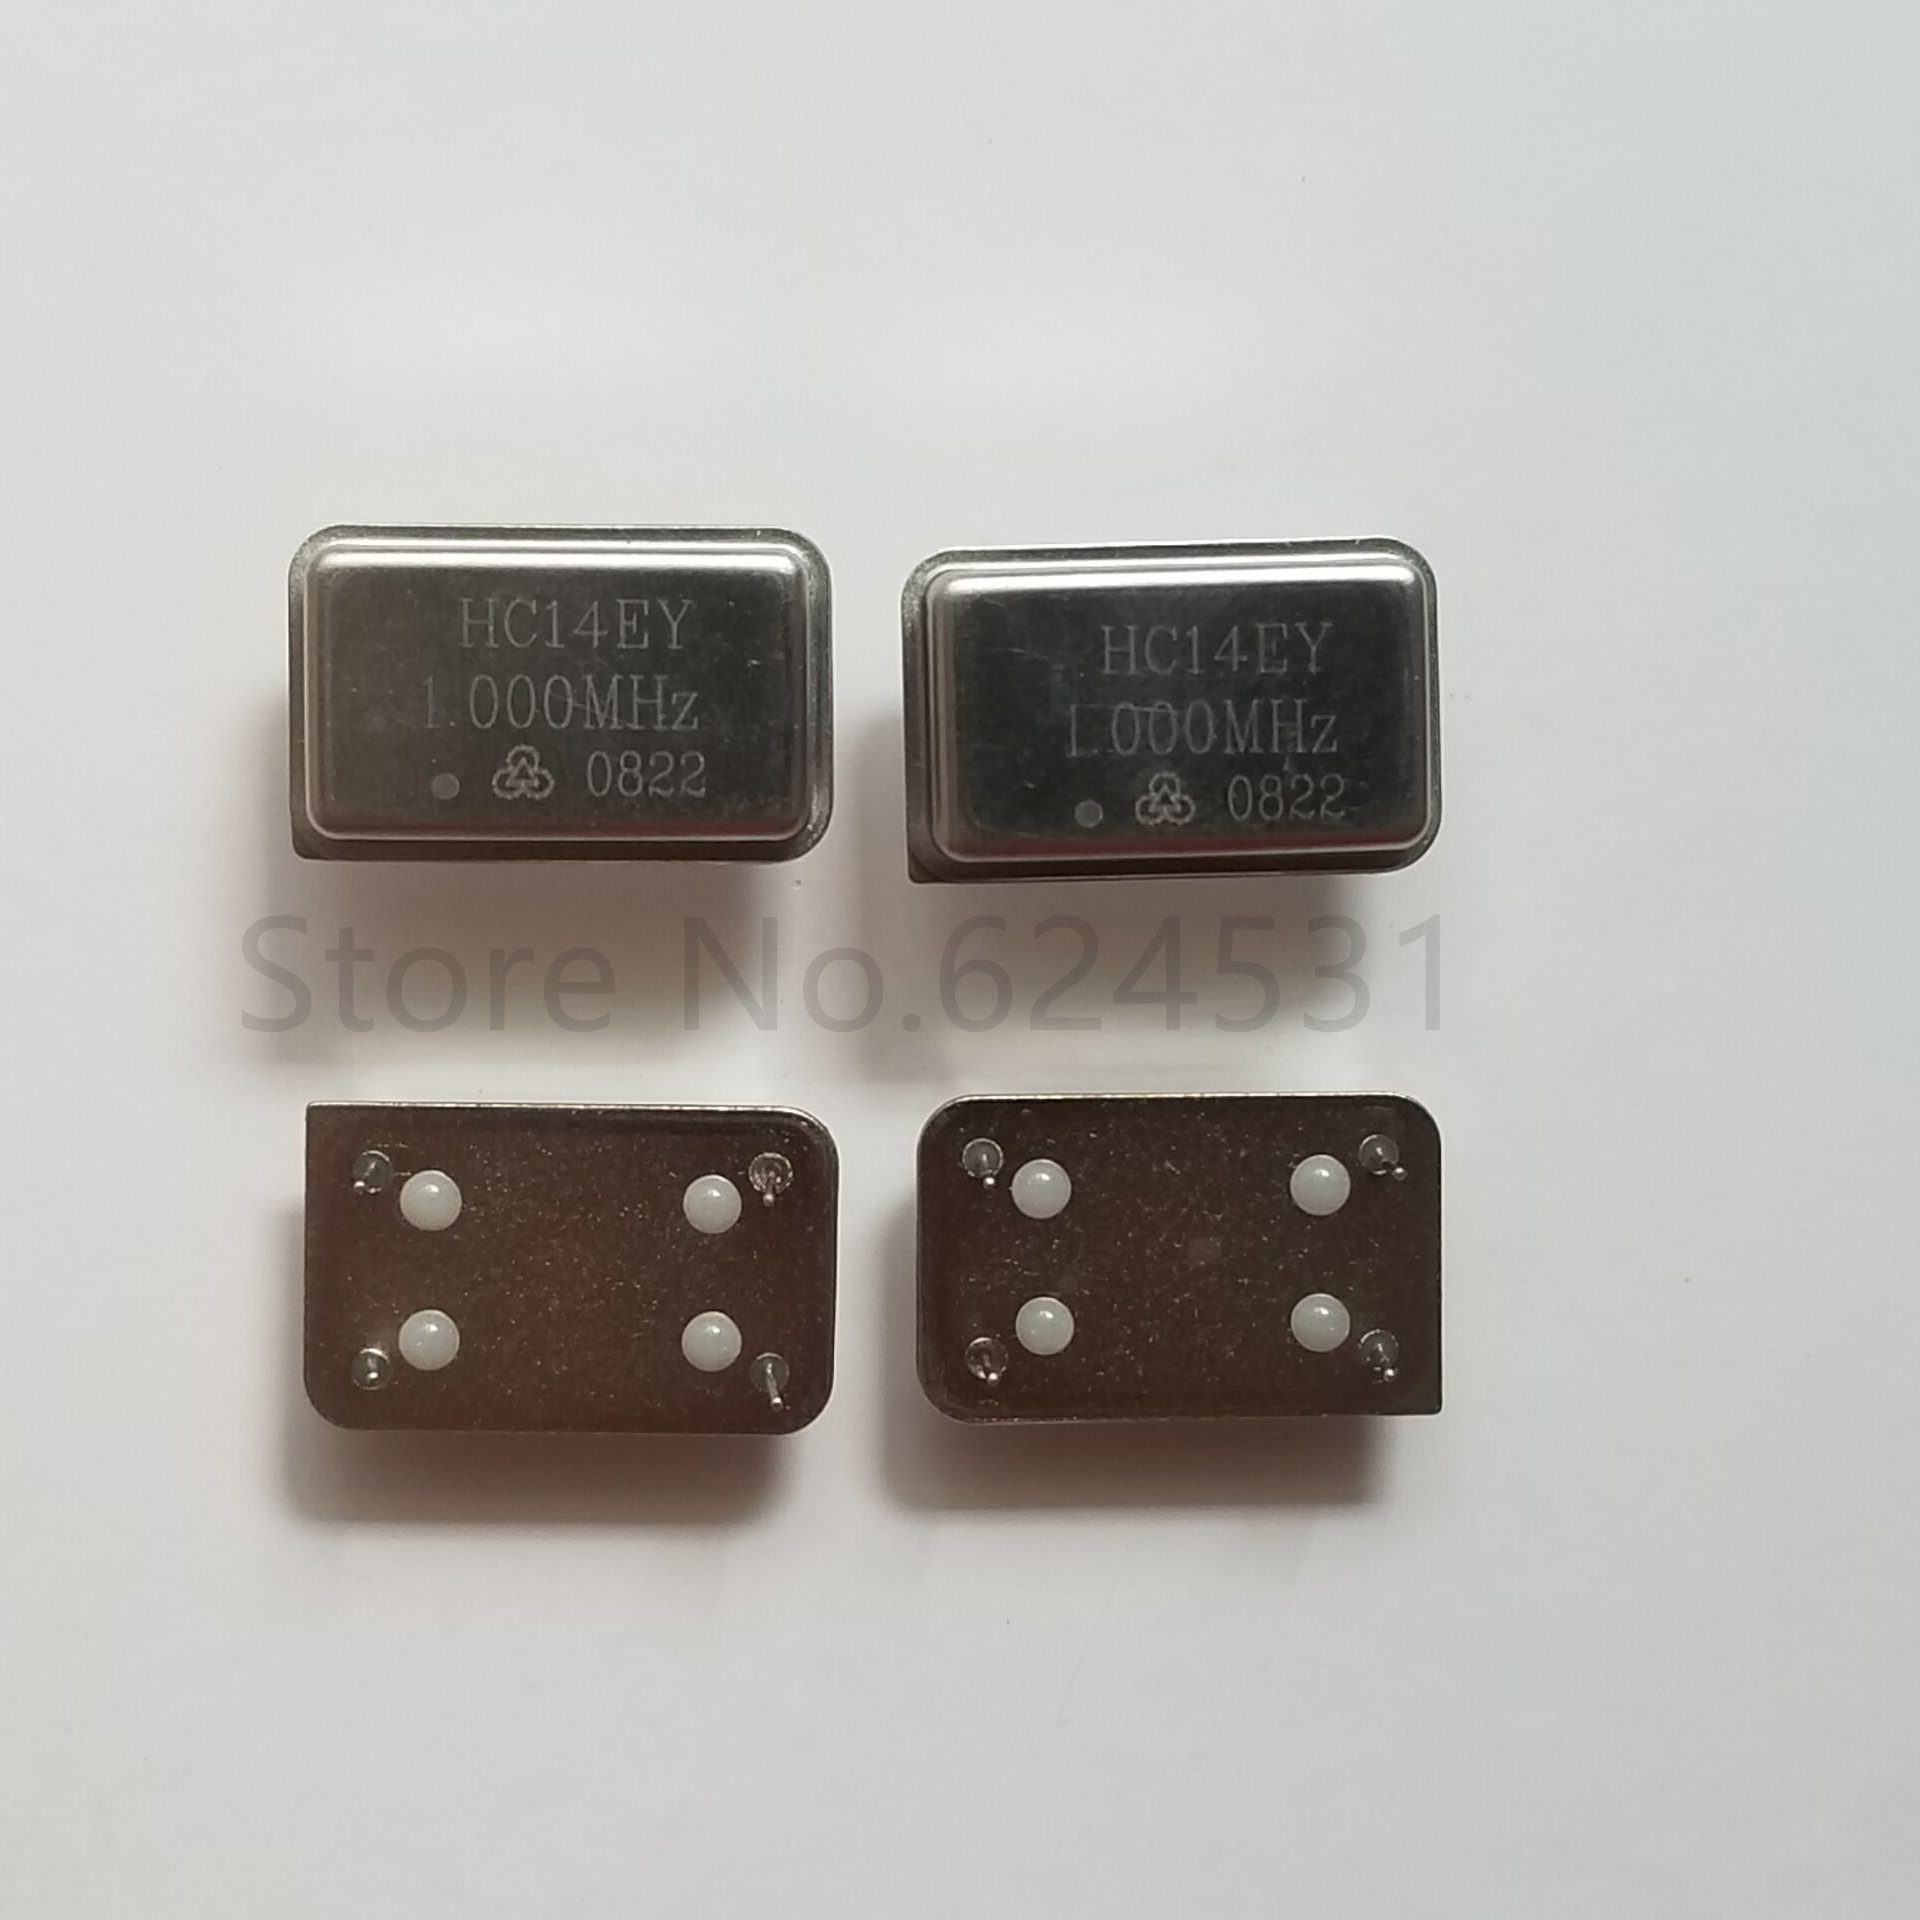 5pcs In-line Active Crystal OSC DIP-4 Rectangular Clock Vibration Full Size 1M 1MHZ 1.000MHZ